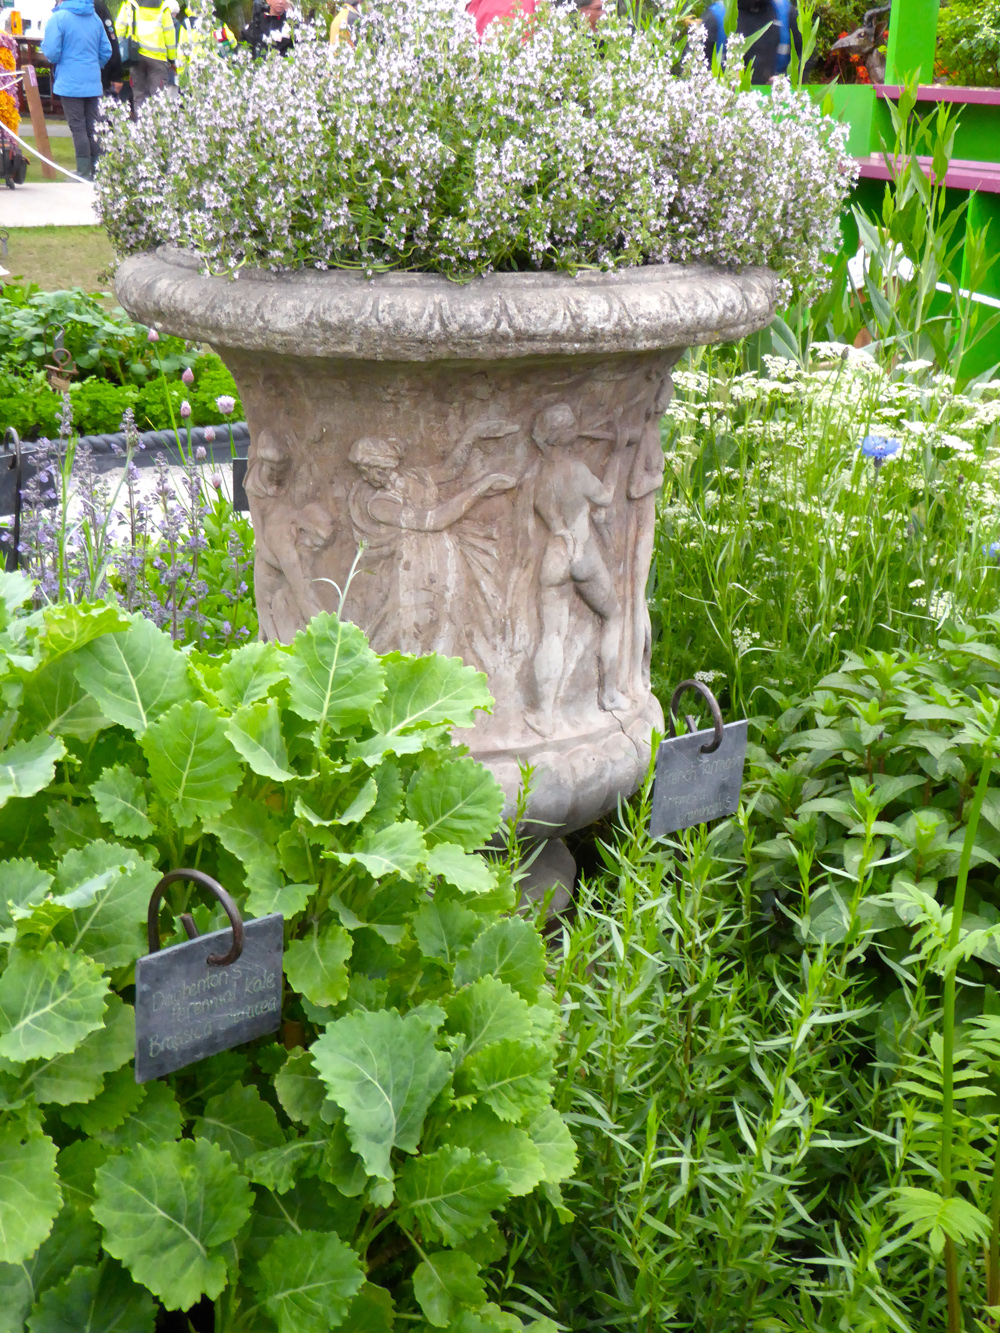 Daubenton's kale and thyme growing in a stone urn.